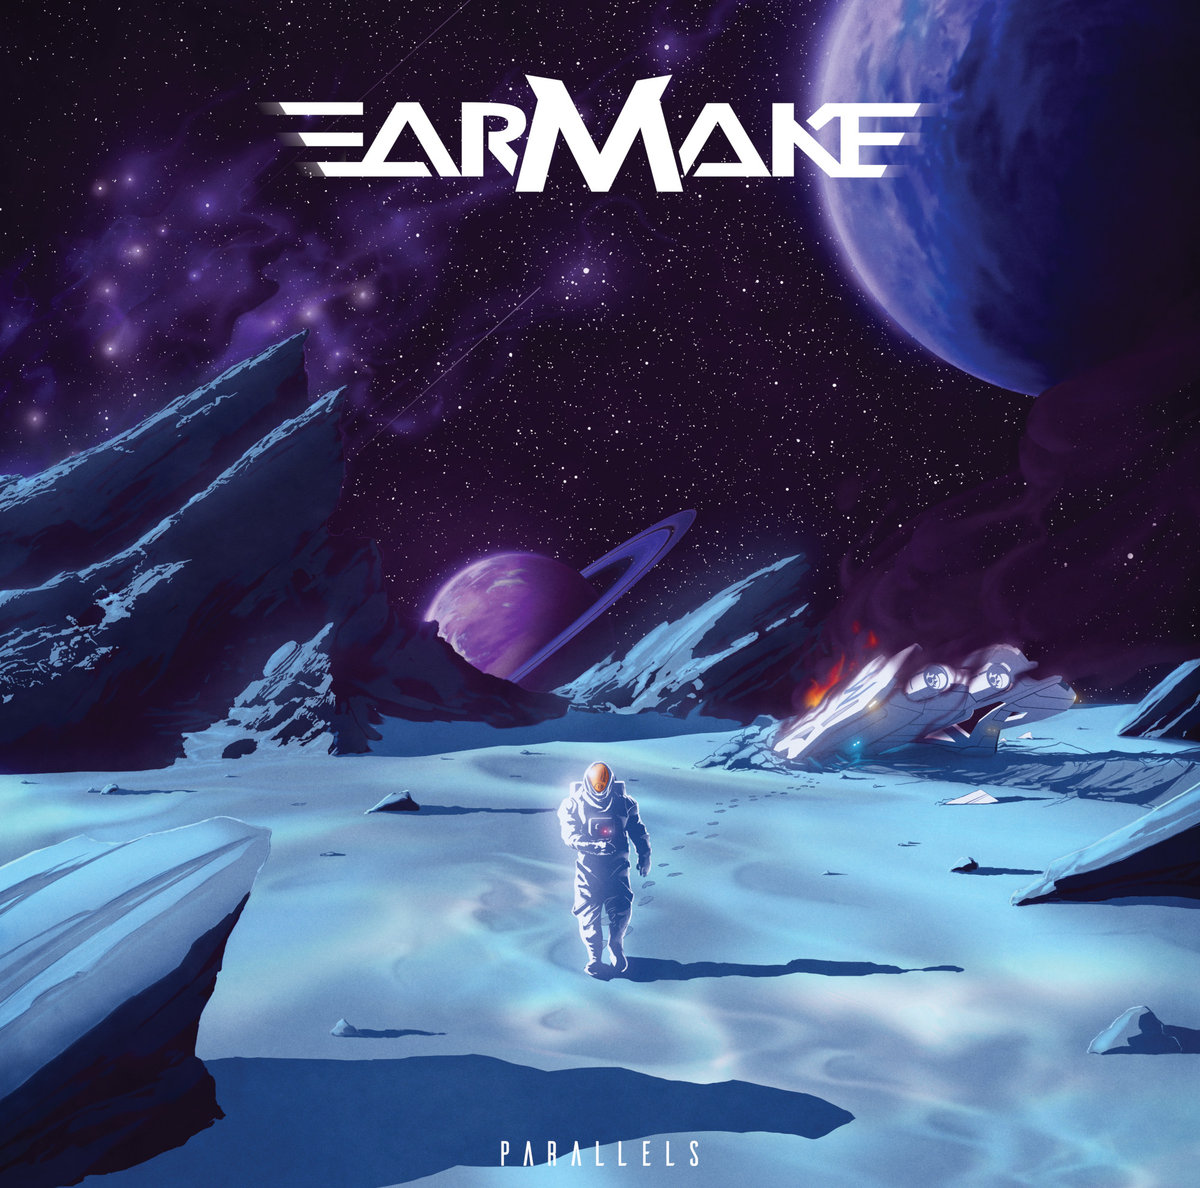 a1326825031 10 - Earmake - Parallels